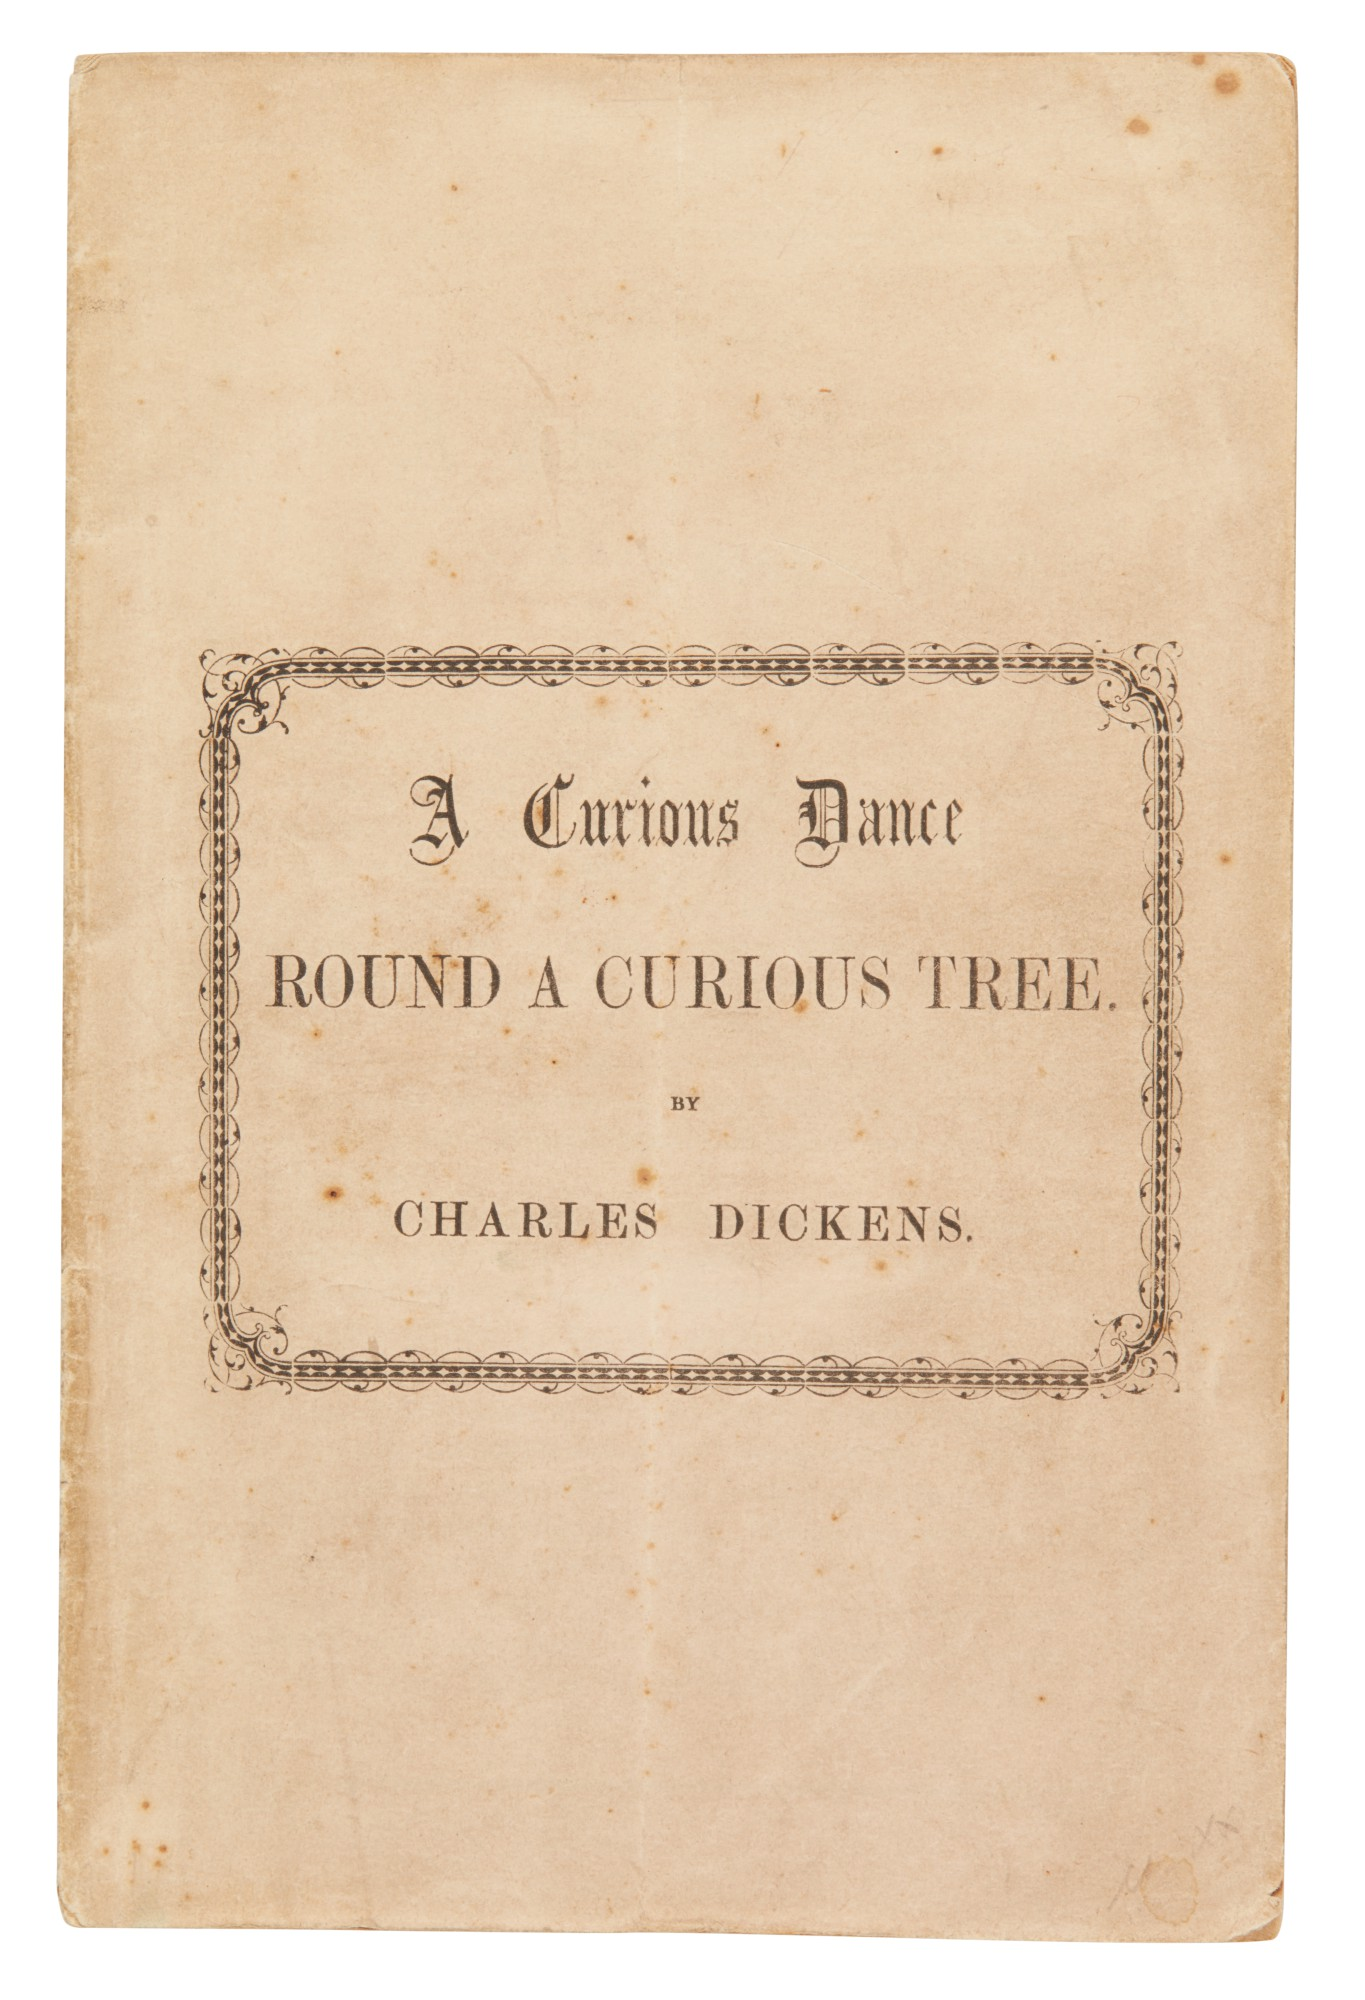 Dickens, A Curious Dance round a Curious Tree, [1860], first separate edition, first issue